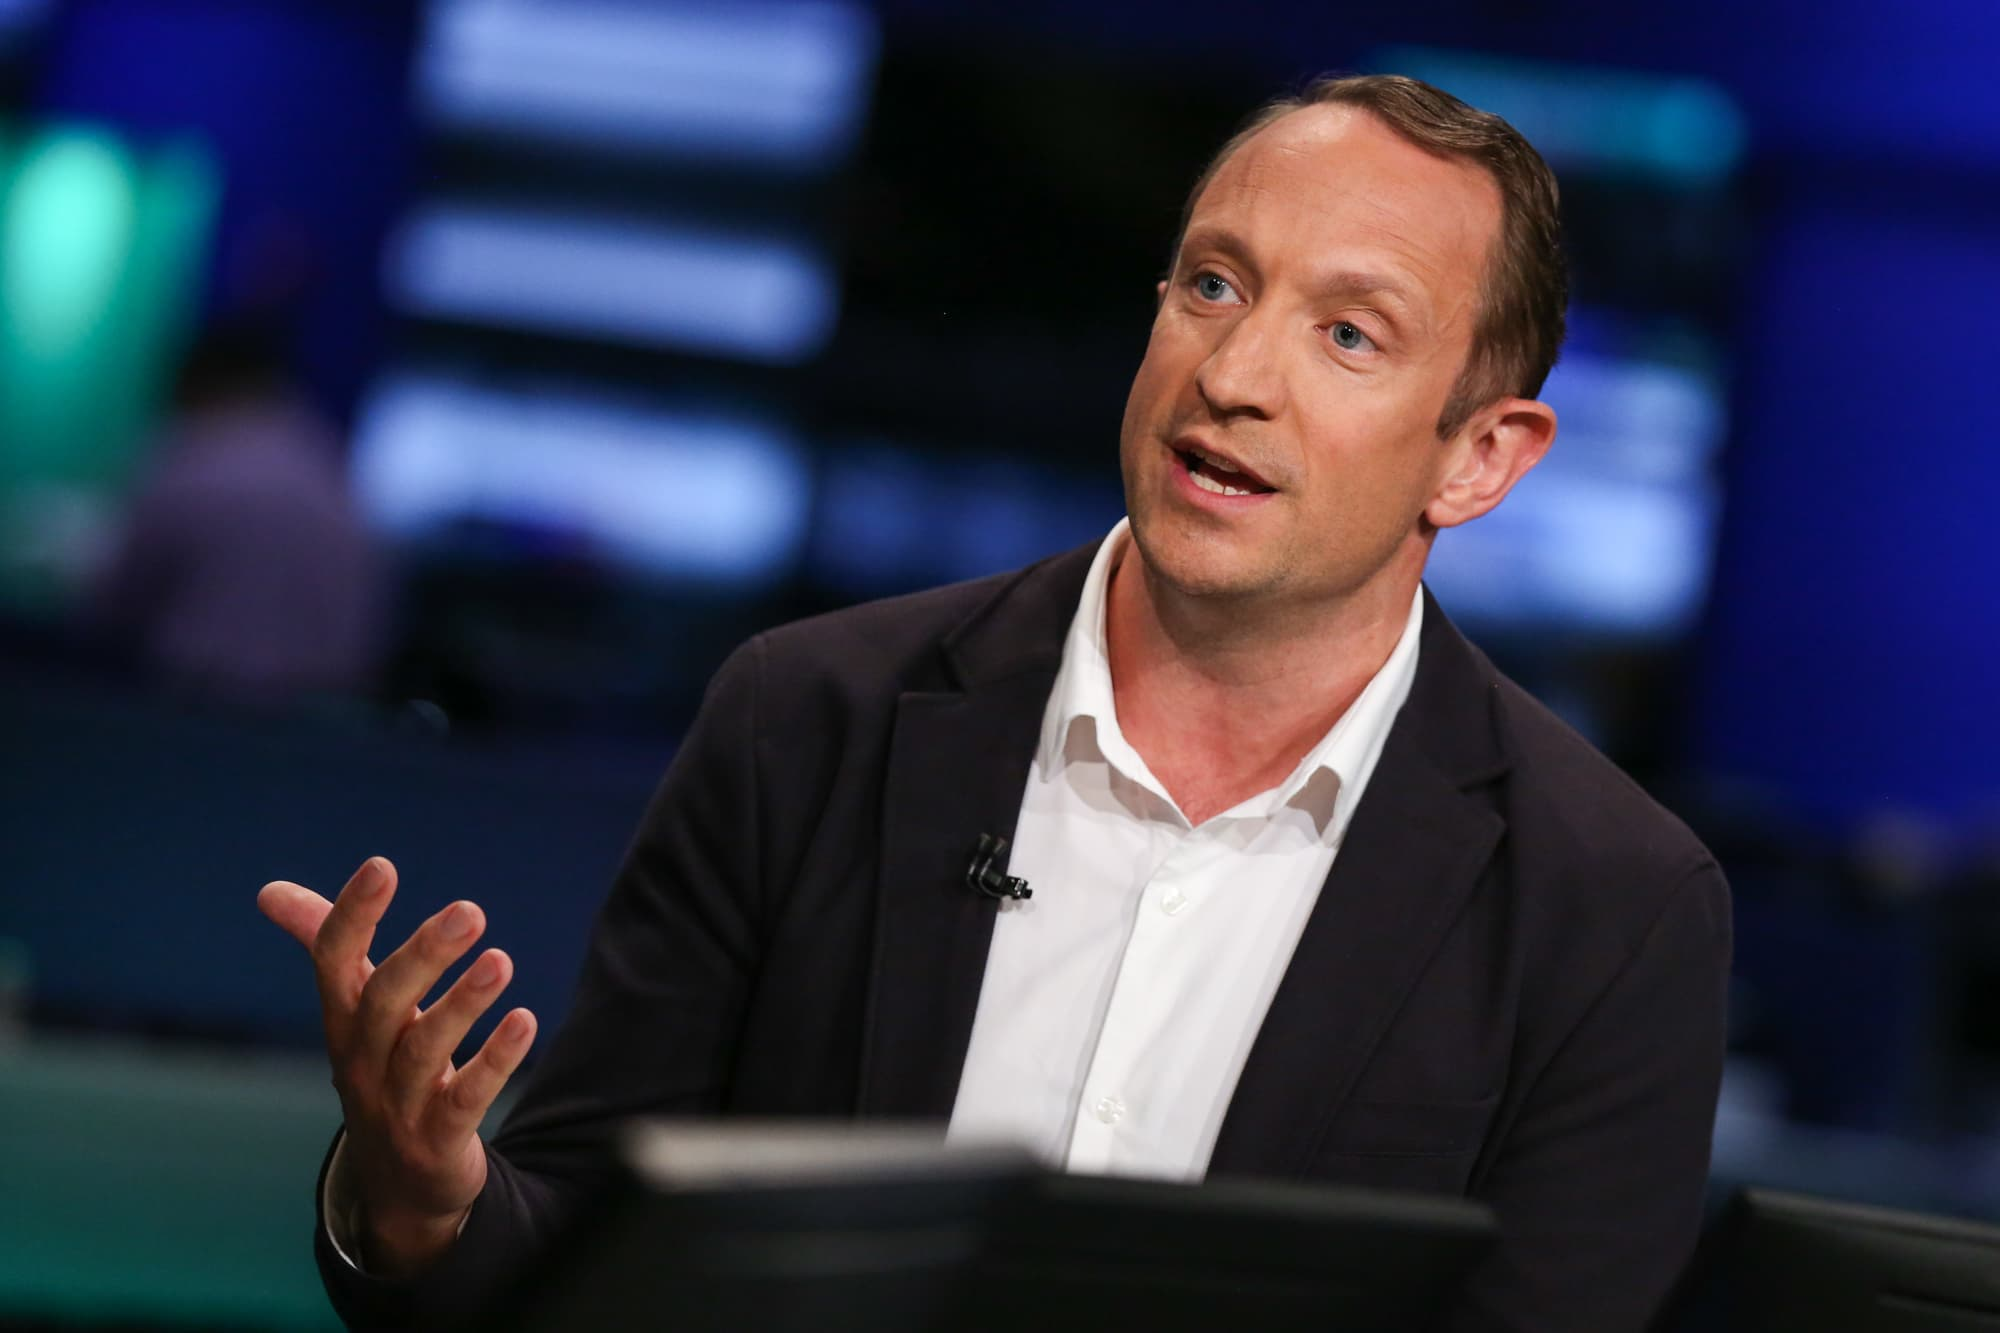 Jet.com President Simon Belsham to step down as Walmart eliminates role, further integrates with Jet